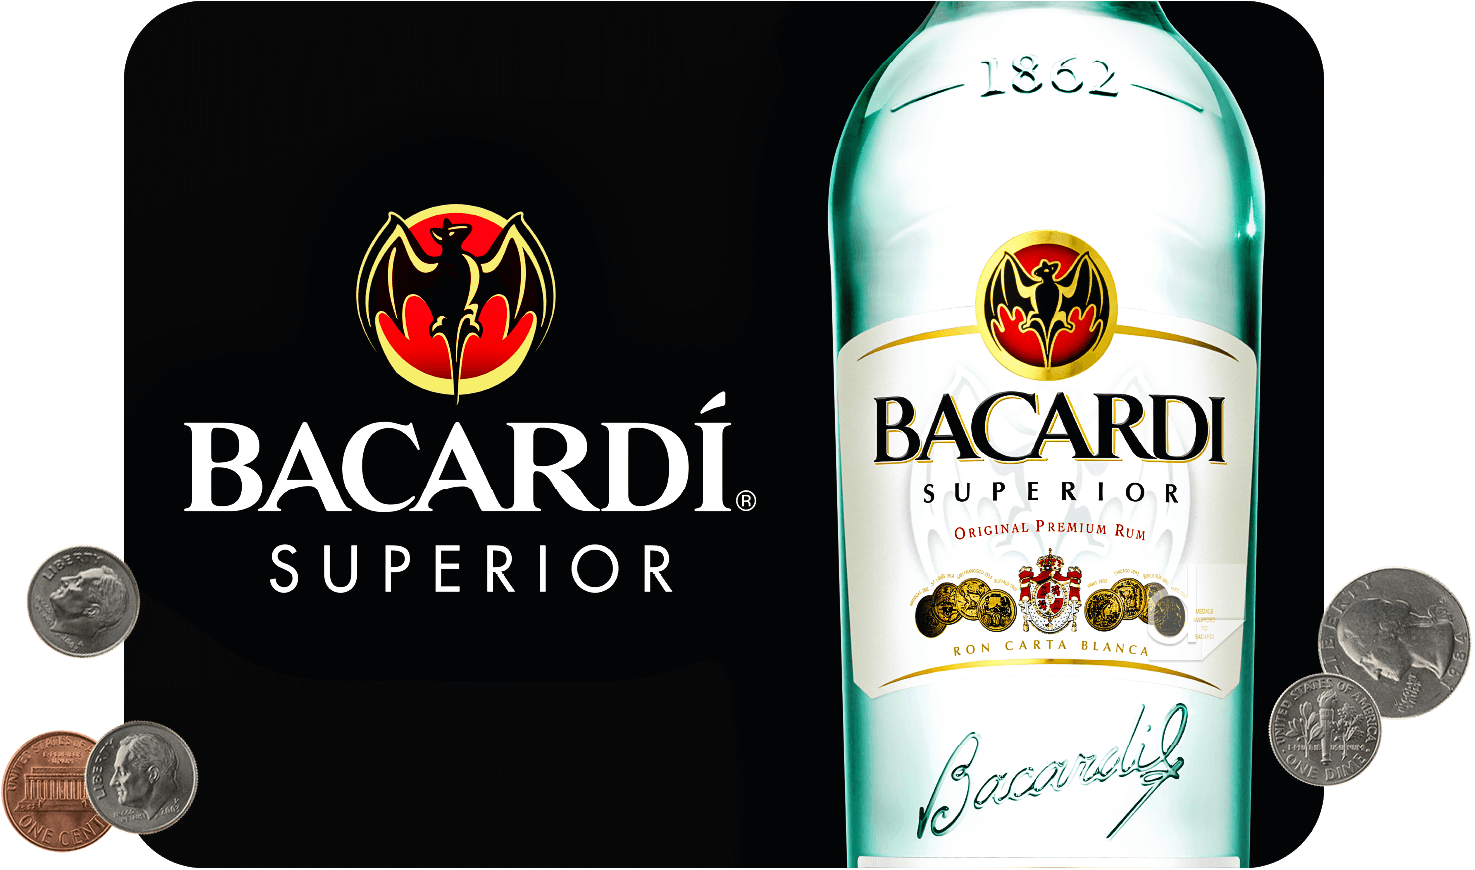 Counter Mat Custom Subsurface Printed by Dilco for Bacardi Rum